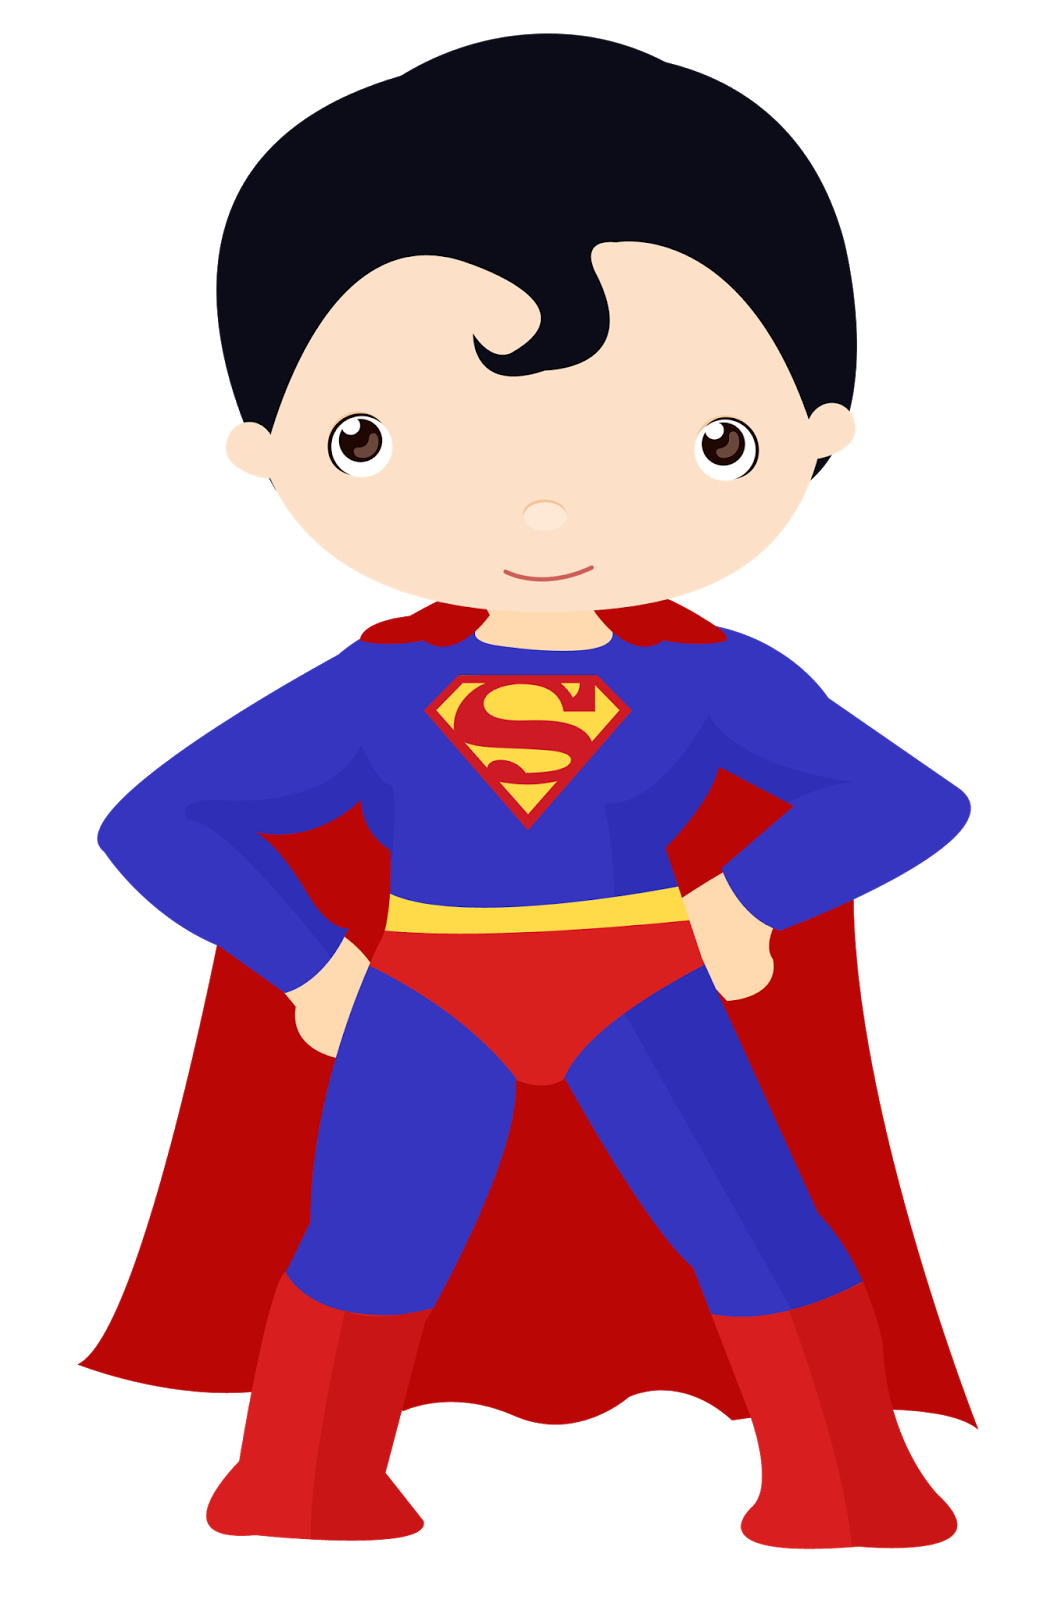 Super hero kids clipart clipart royalty free library superheroes-kids-clipart-101.png (1061×1600) | Fundos para rótulos ... clipart royalty free library